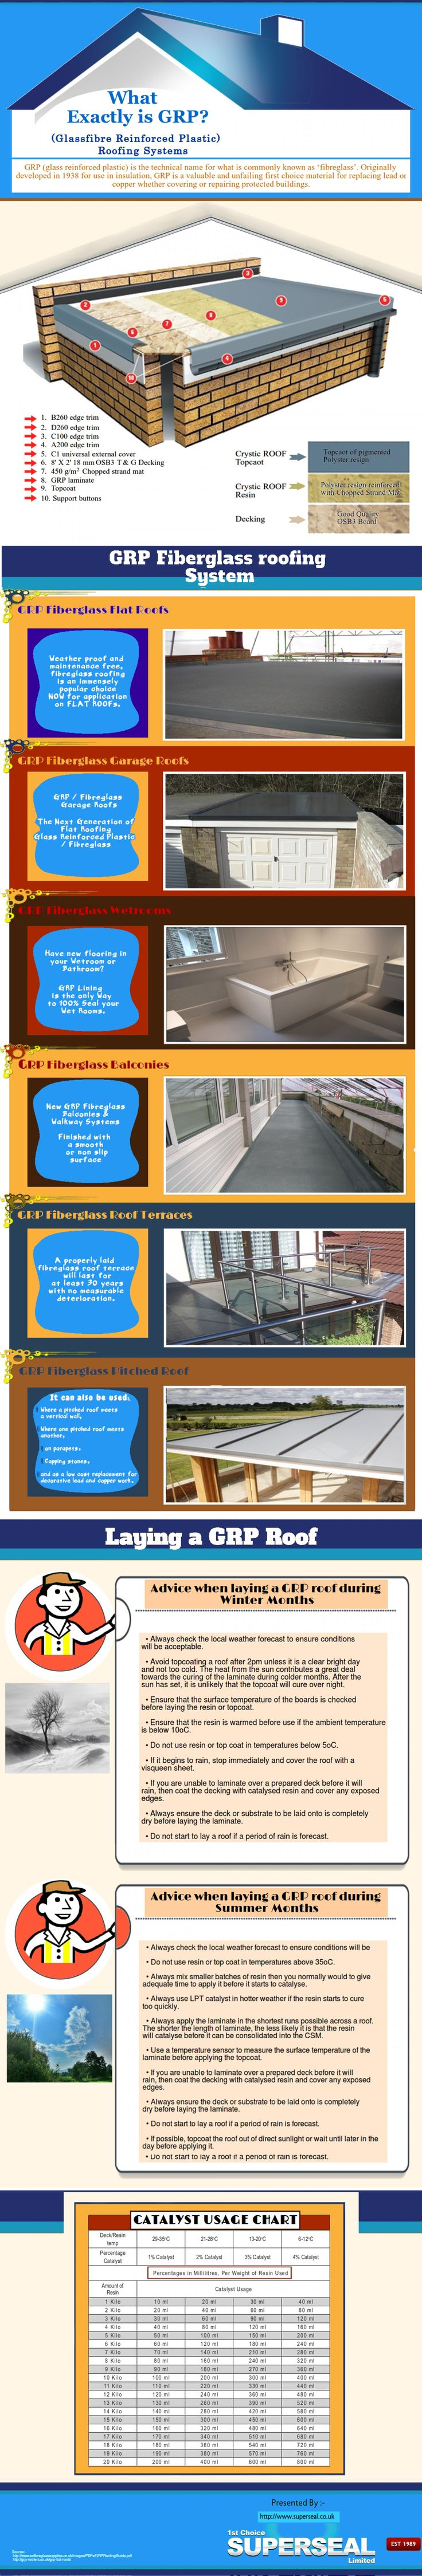 polycarbonate roofing installation instructions